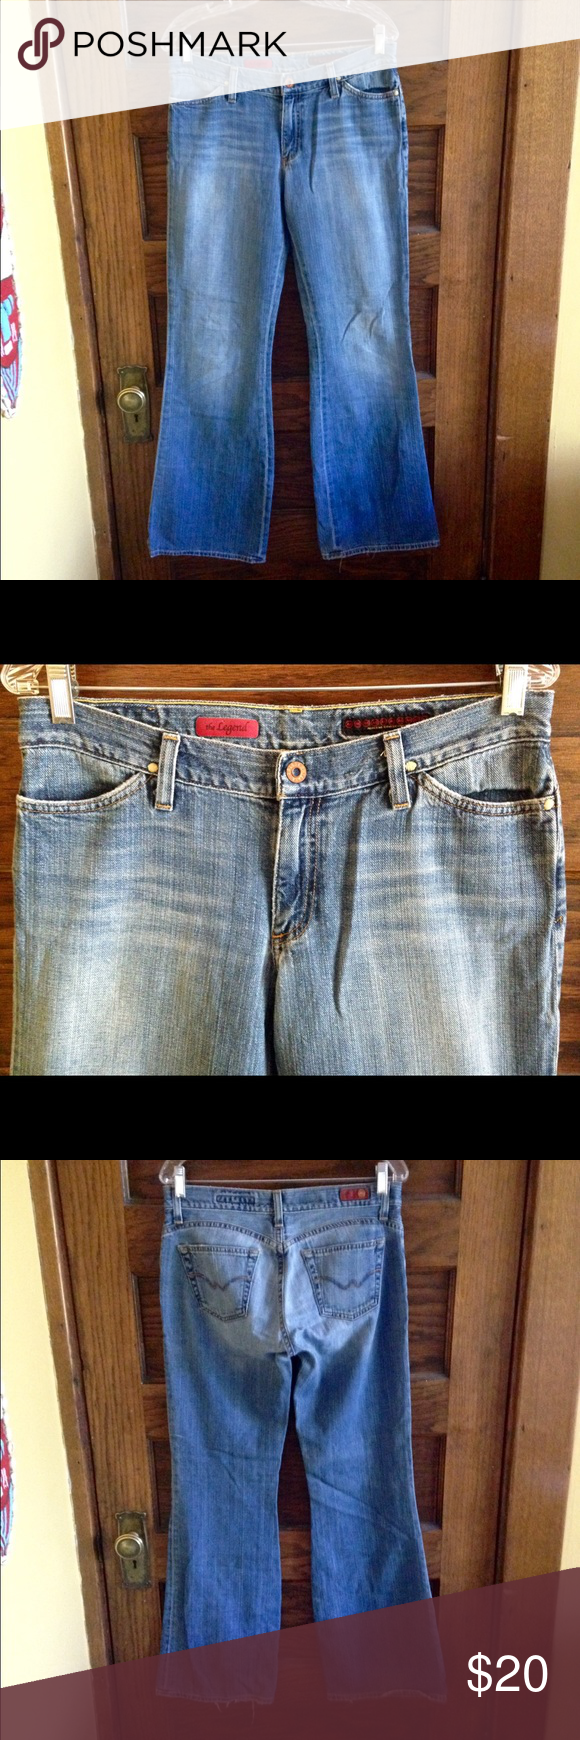 """AG Adriano Goldschmied-""""the legend"""" jeans-Sz.30R Gorgeous pair of jeans from: AG Adriano Goldschmied sized 30R. These are great pre owned condition, showing normal wear in the crotch, but no holes or tears. AG jeans are just so wonderfully soft!                                        Style: The Legend #GAT 1026                                  Measurements: waist:16/rise:8/inseam:31 AG Adriano Goldschmied Jeans Boot Cut"""